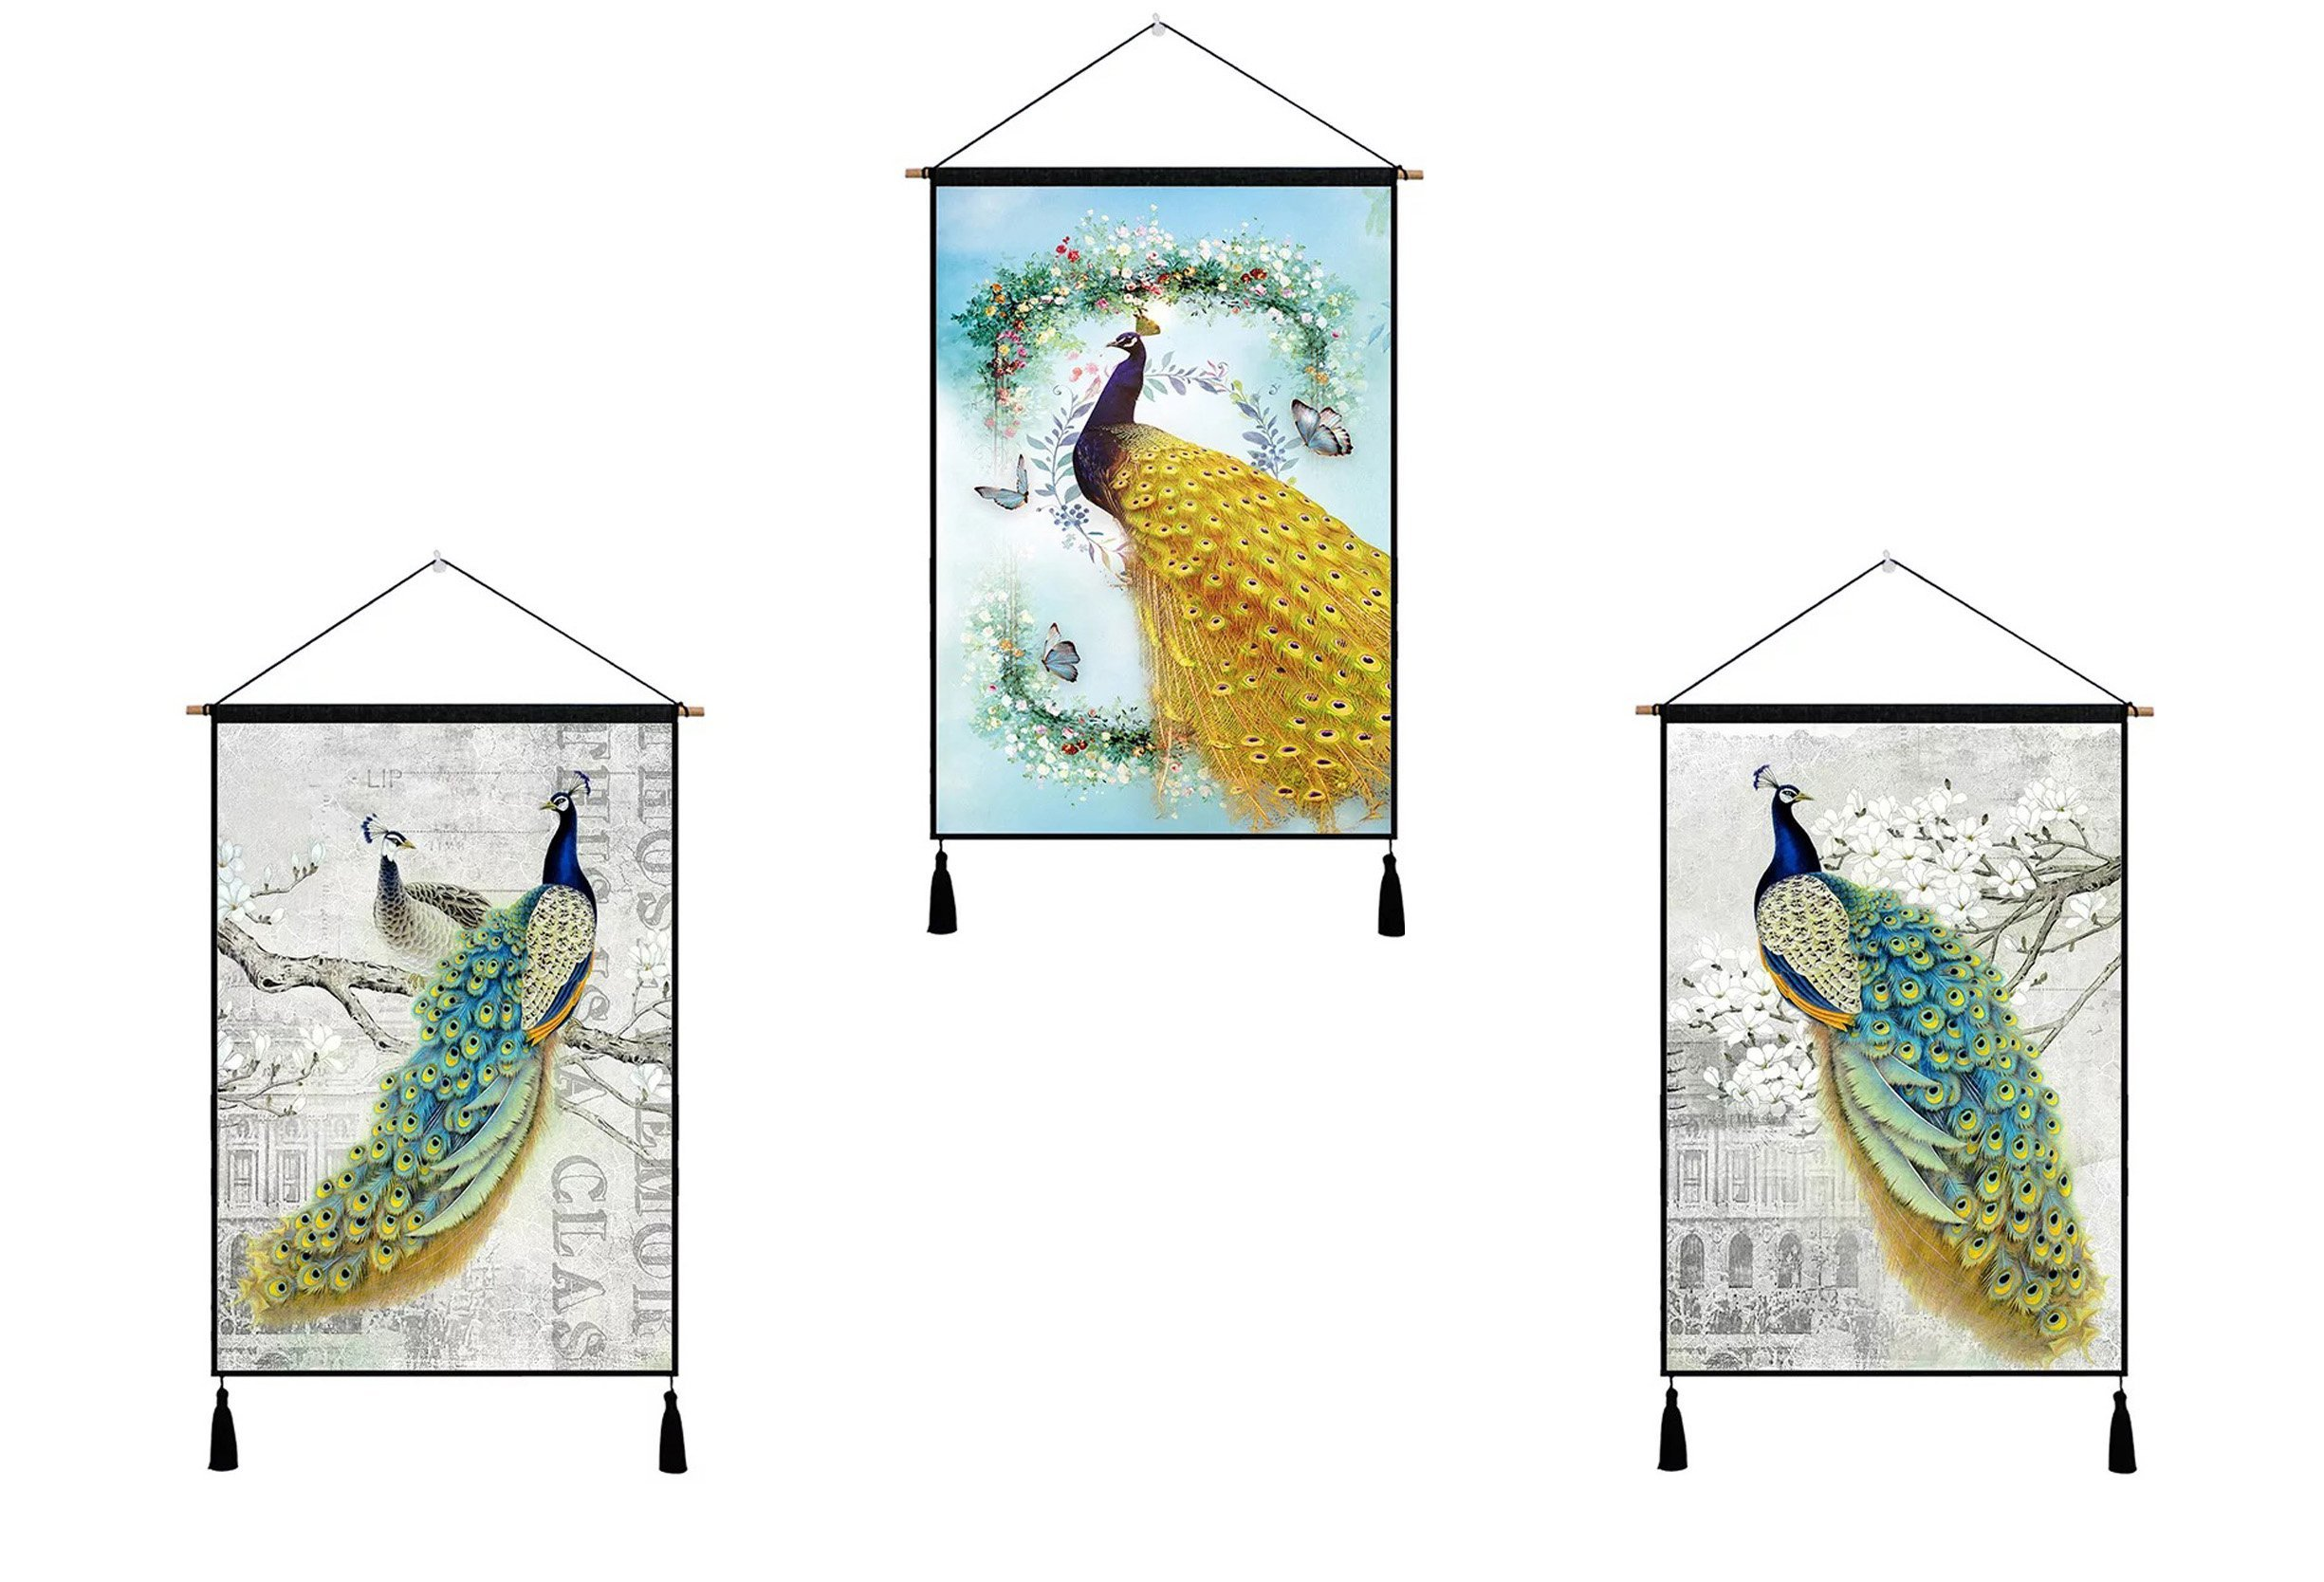 SUNSHINE EVERYDAY Compact Wall Artwork Print Hanging Tapestry Home Wall Décor Plant Road Nature Canvas with Wooden Hanging & Hooks (WD-16) by SUNSHINE EVERYDAY